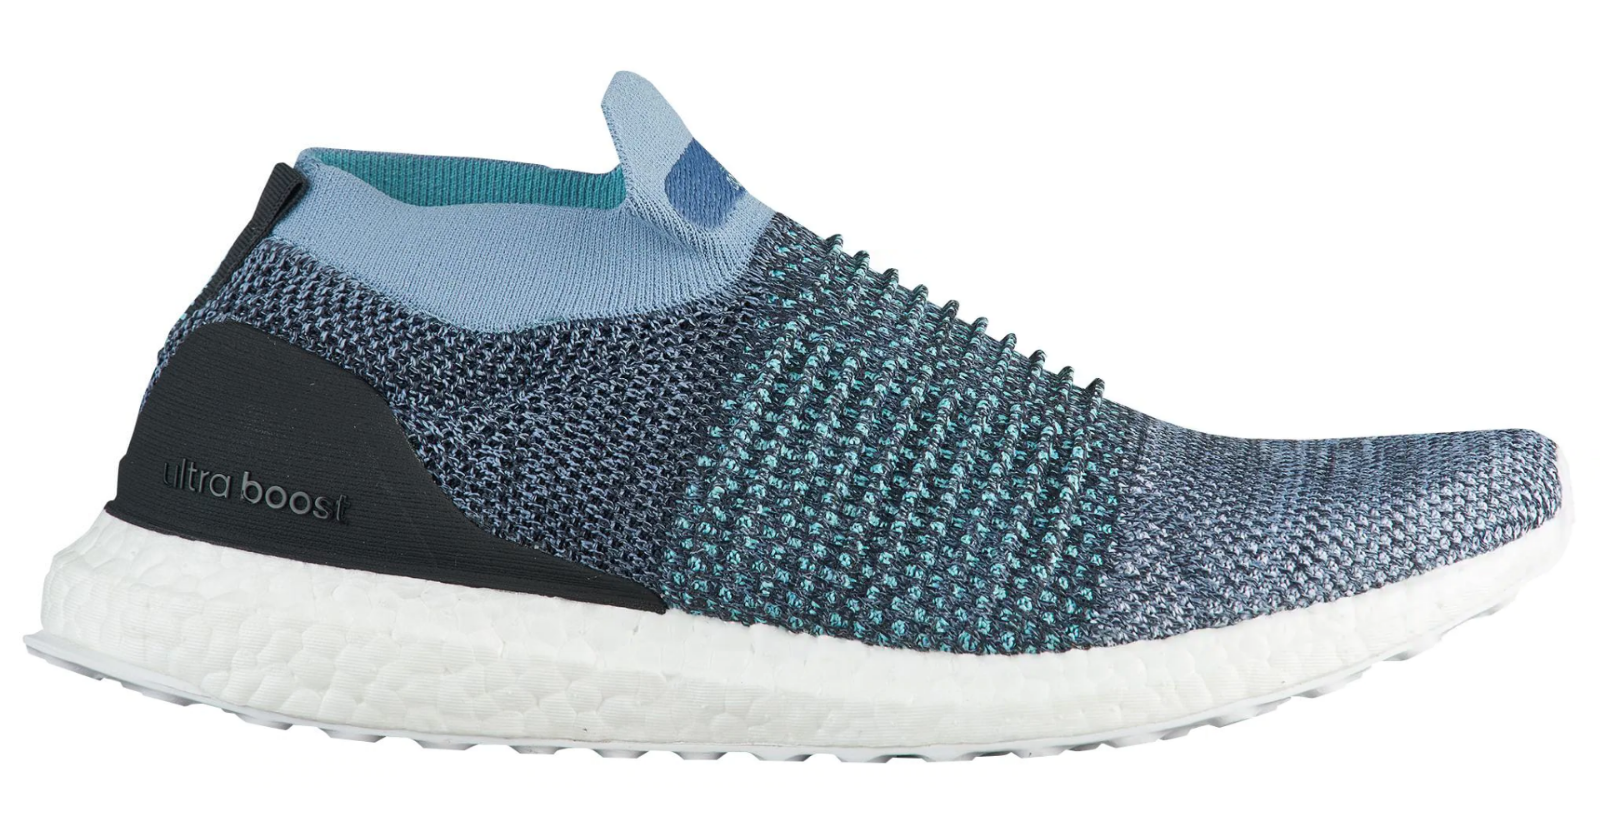 8925e330d Adidas Ultra Boost Laceless Parley Parley Parley Men s shoes CM8271 Raw Grey  Sizes (9- ...